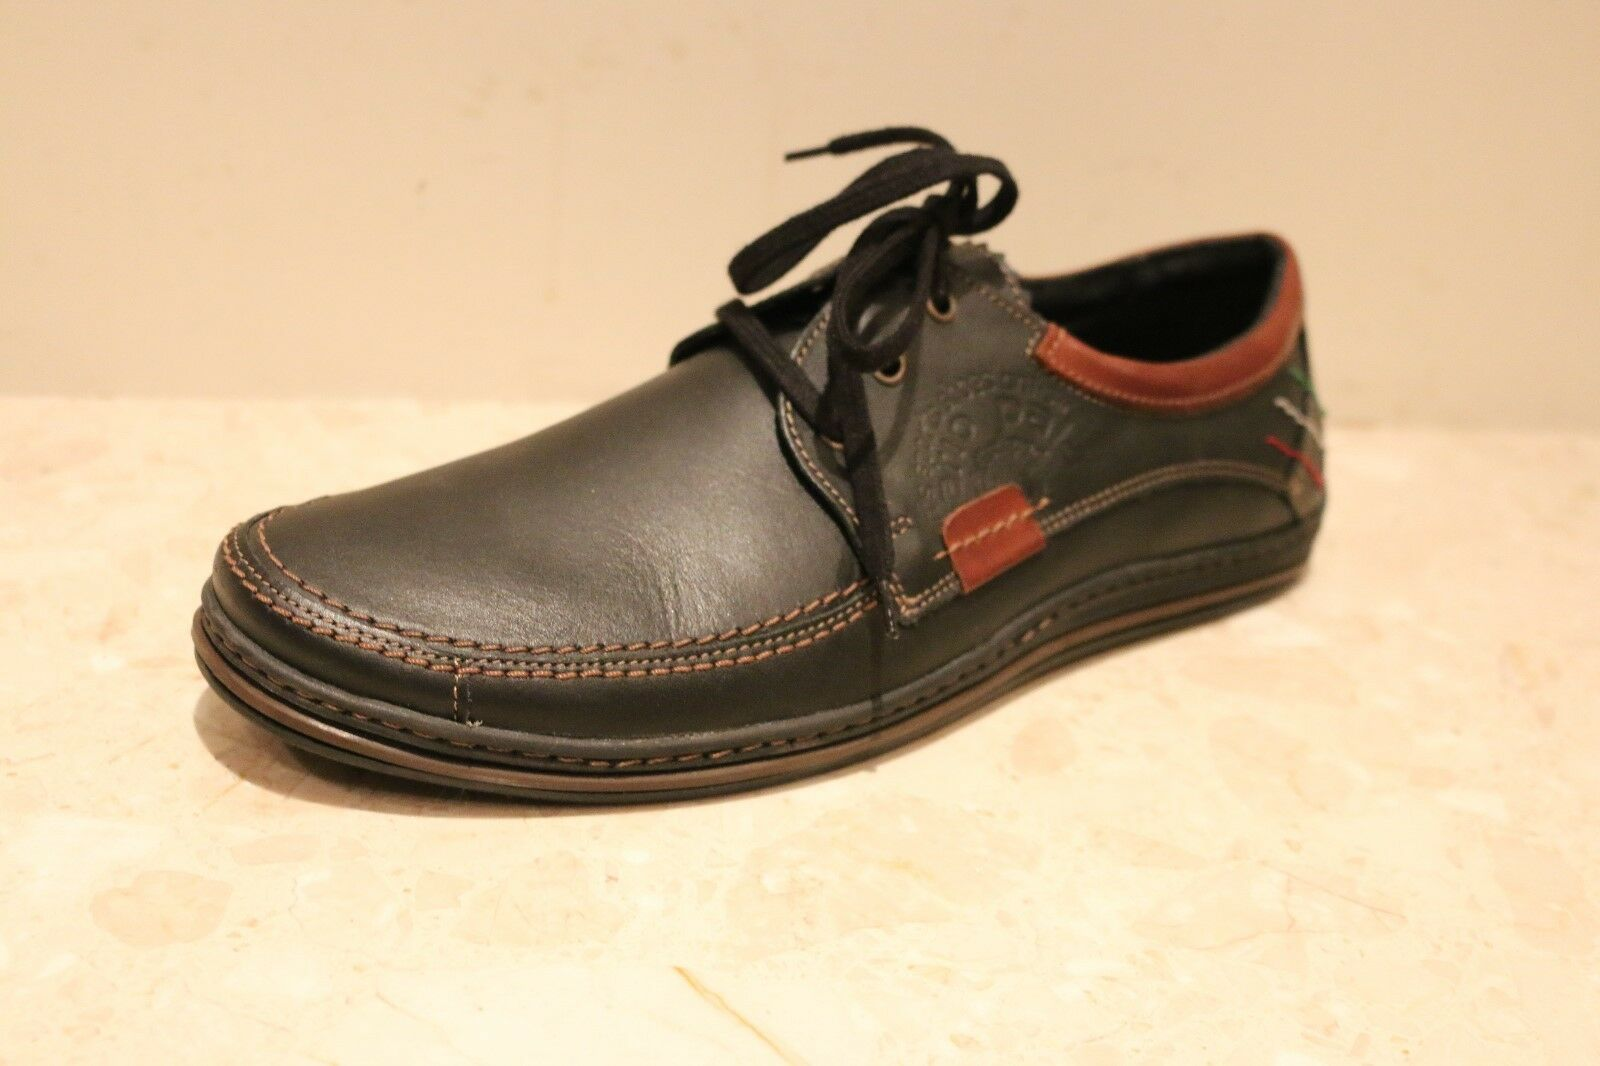 MARIO PALA 100% LEATHER MENS CASUAL SHOES NICE AND LIGHT